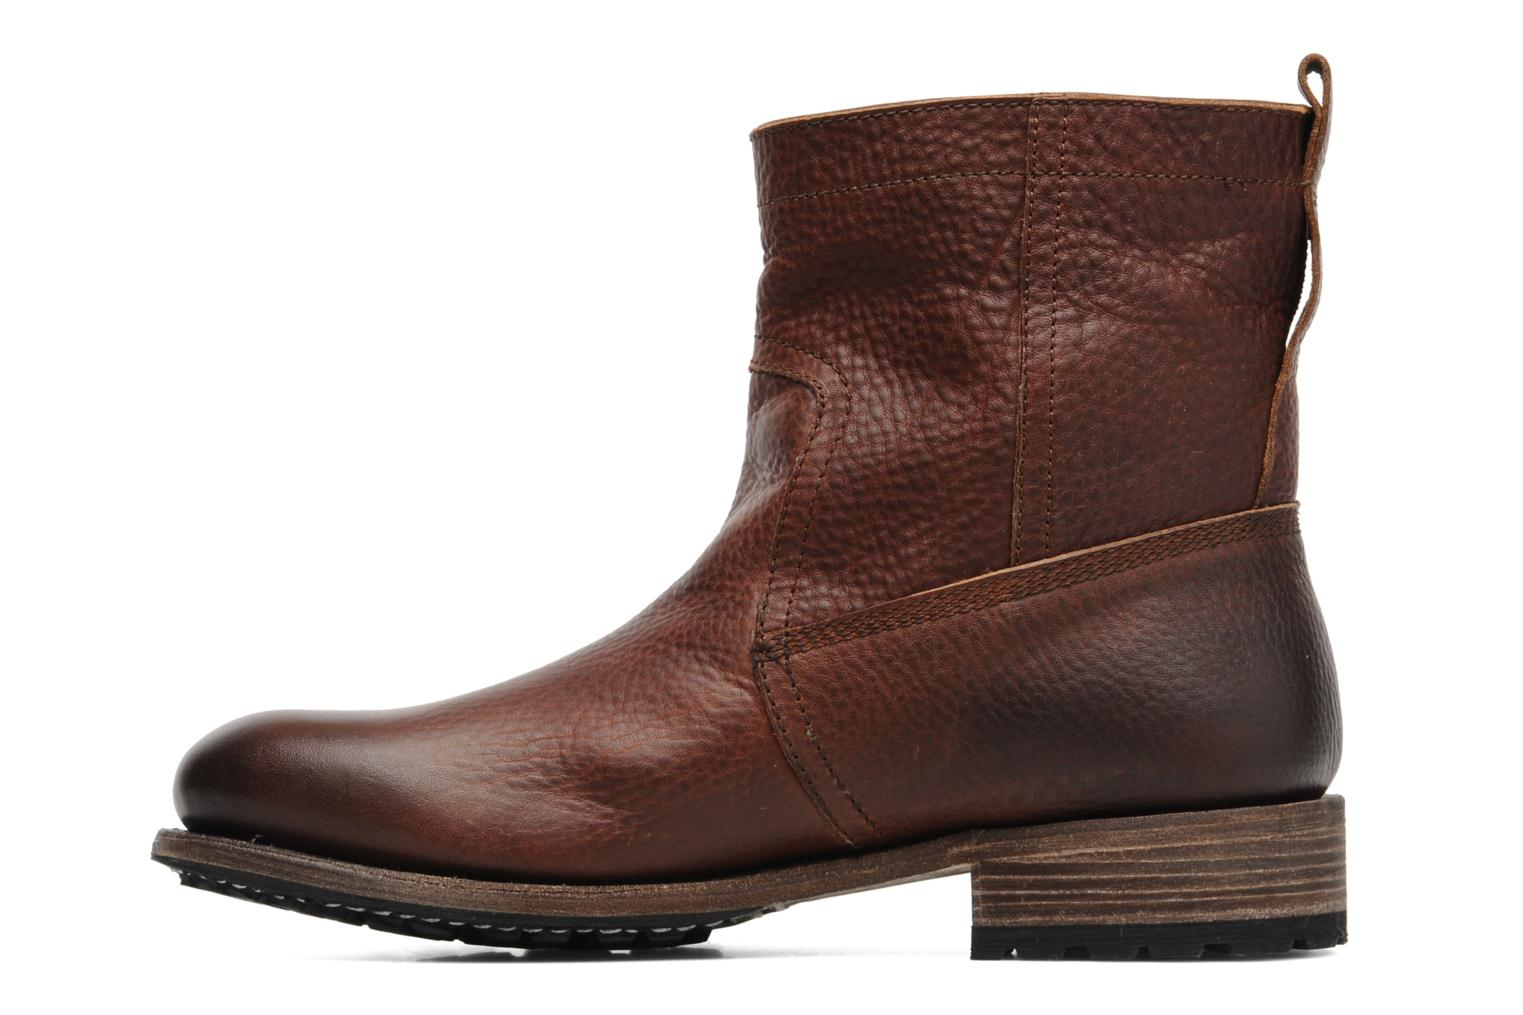 blackstone fireman boot ankle boots in brown at sarenza co